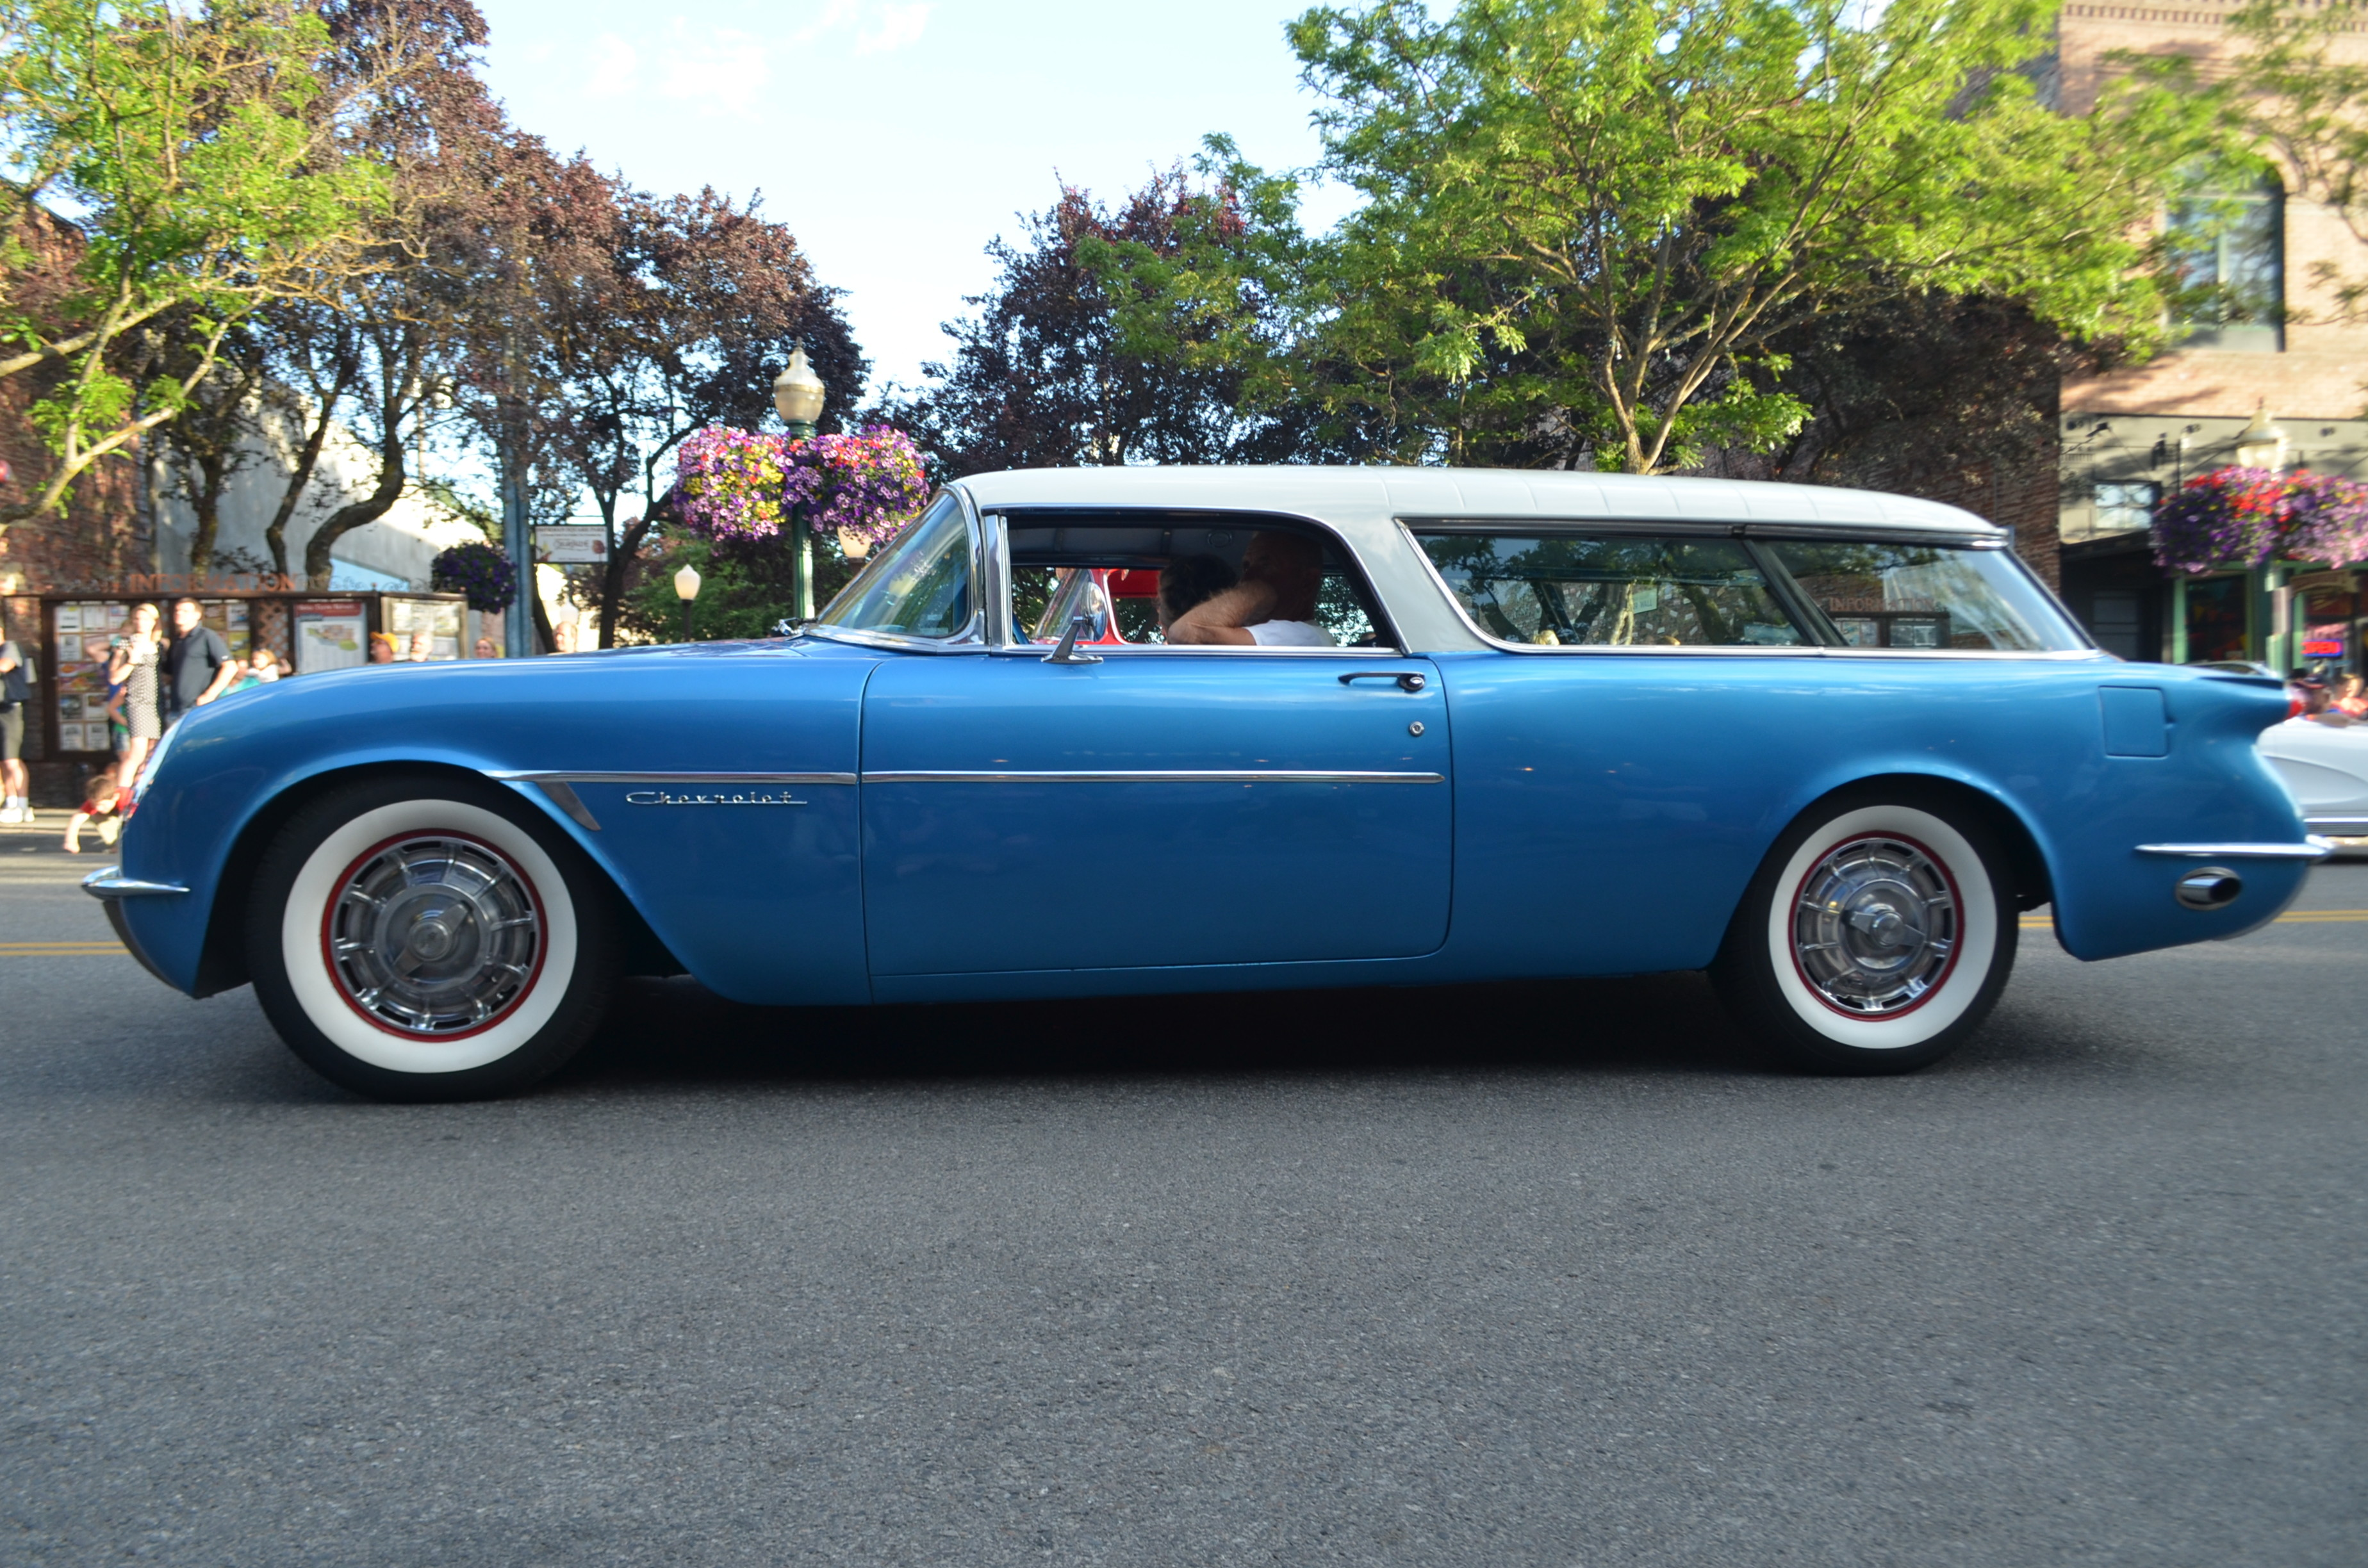 Part Corvette part wagon, this custom is a perfect blend of both